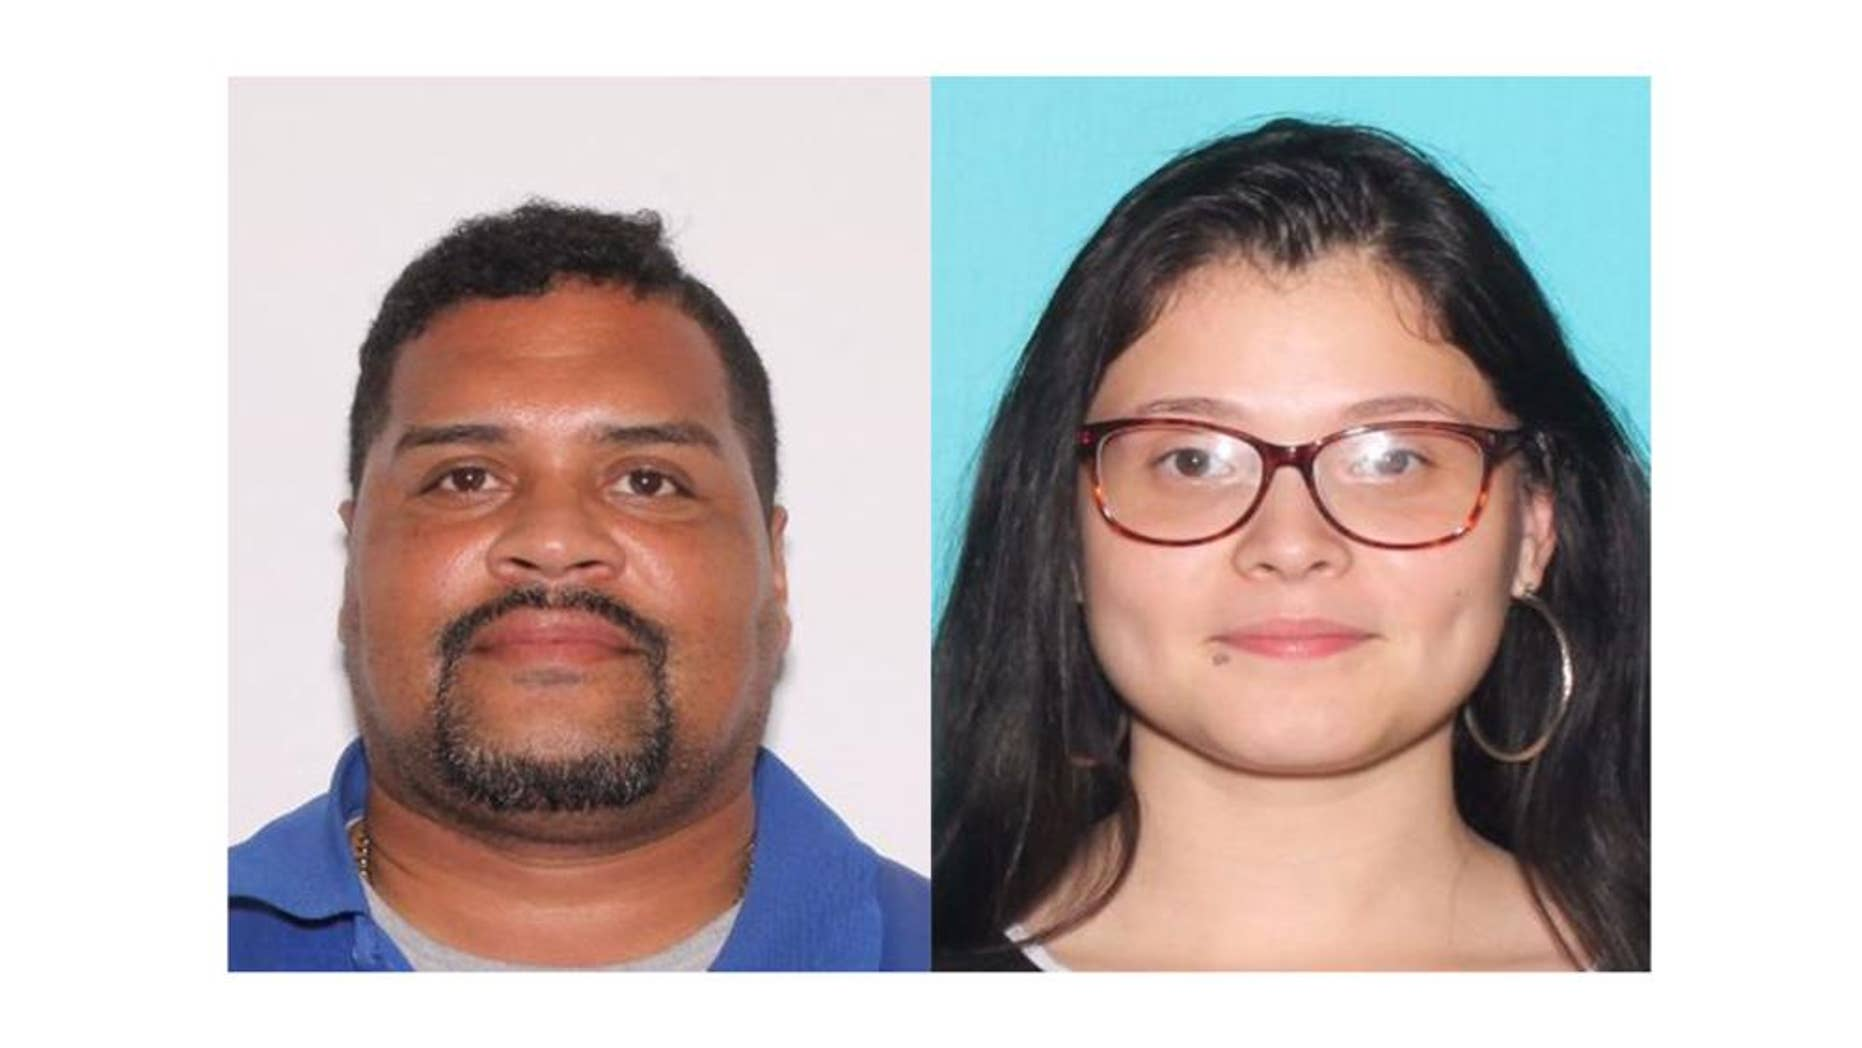 Jose Soto-Escalera, 41, was charged on two counts of first-degree murder, reports said. His alleged victim is Tania Wise, 23.